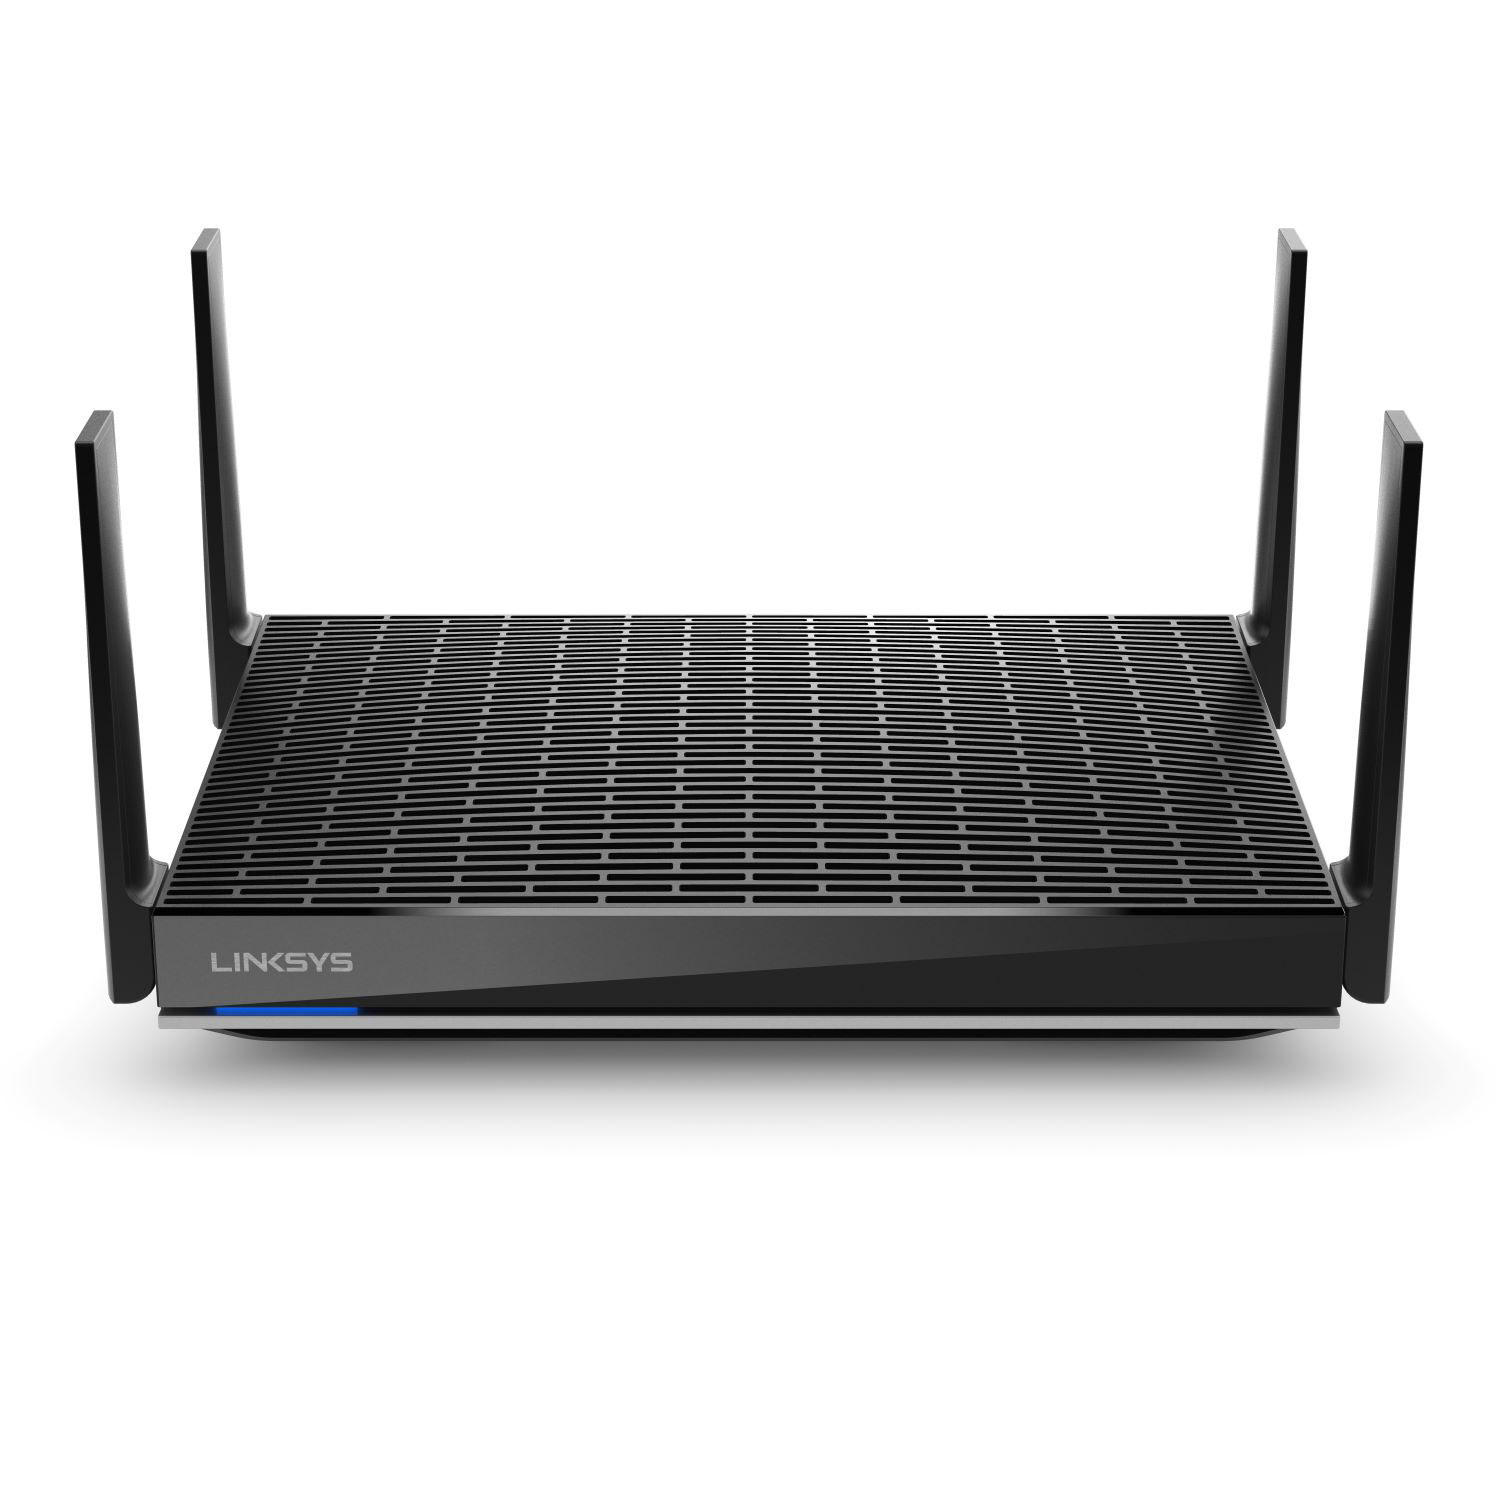 Linksys AX6000 Dual-Band Mesh Wi-Fi 6 Router